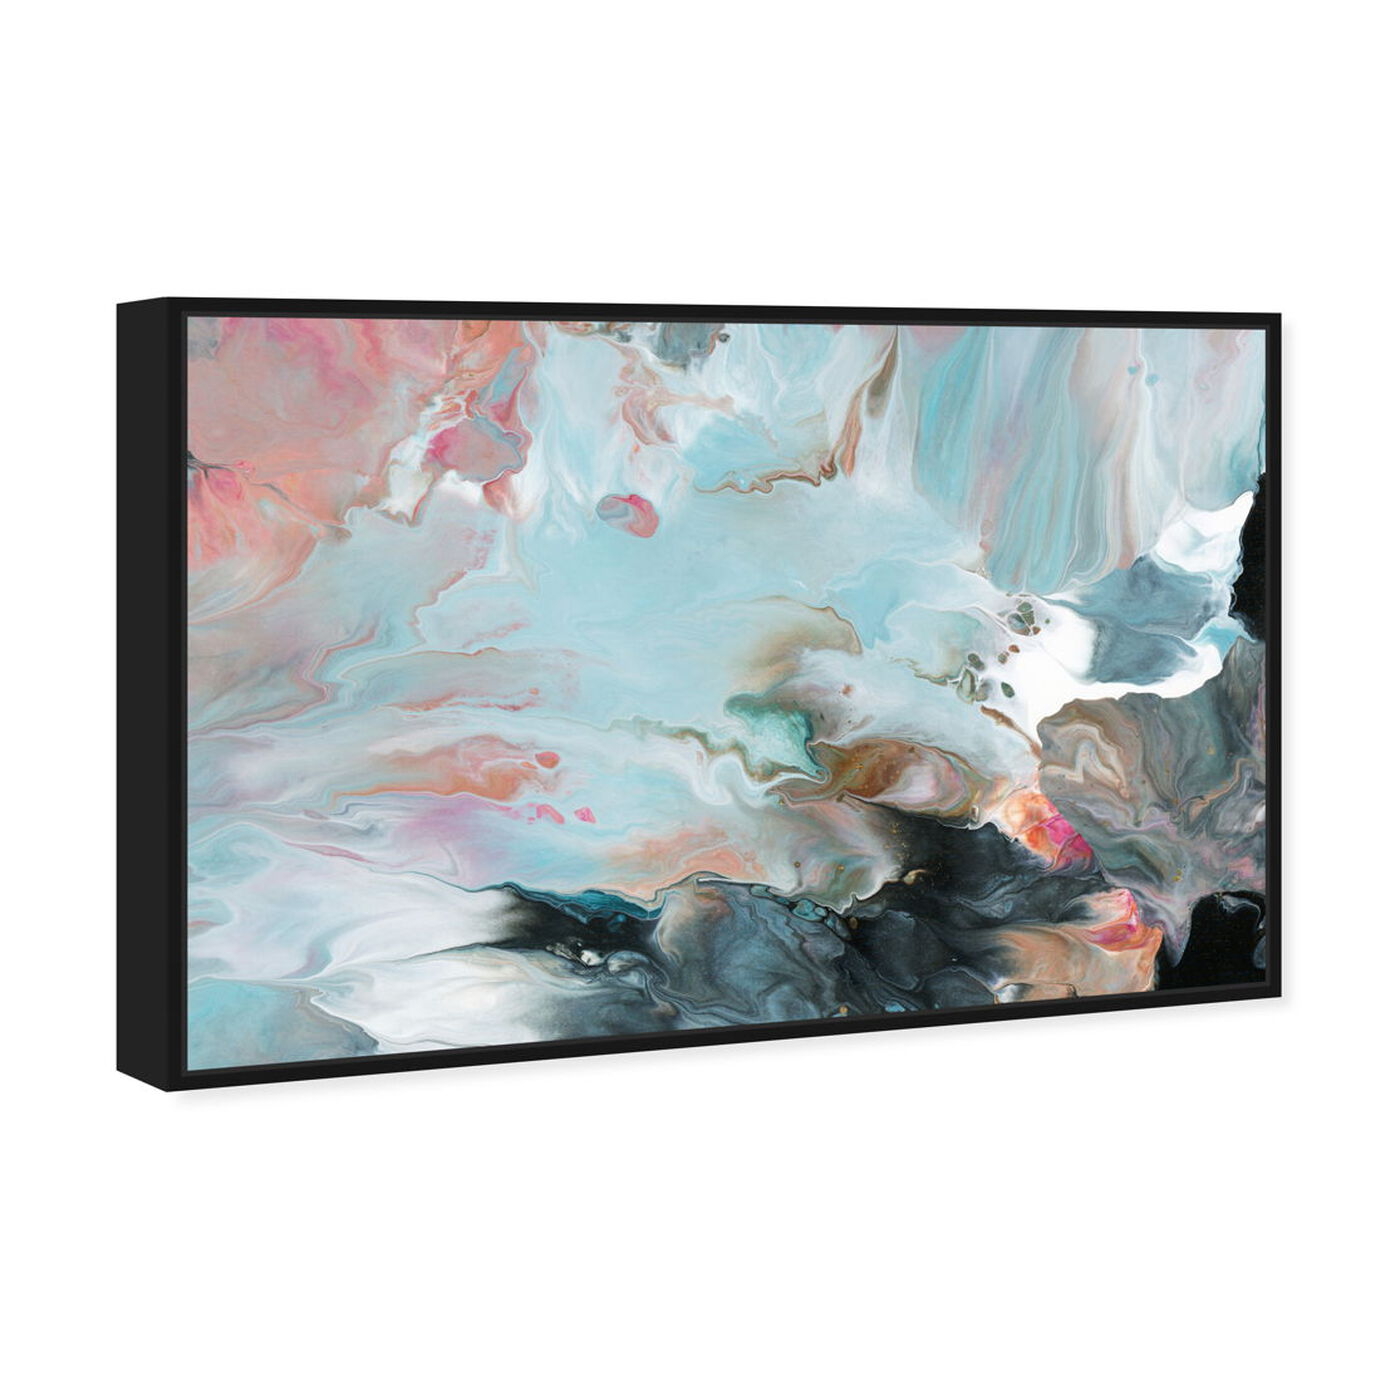 Angled view of Dreaming in Colors featuring abstract and paint art.